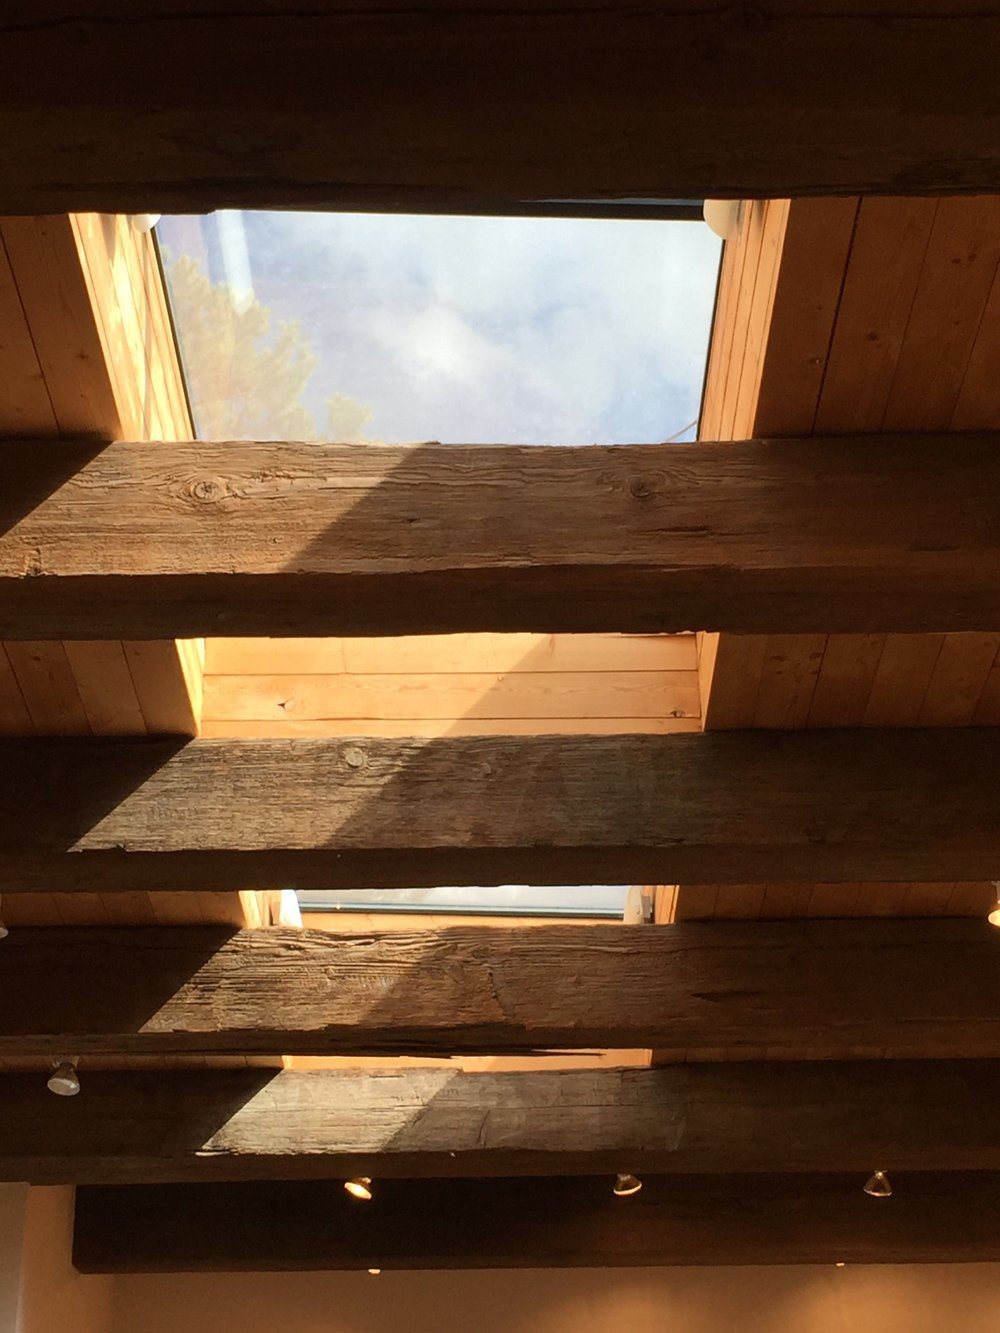 Tesuque studio skylight